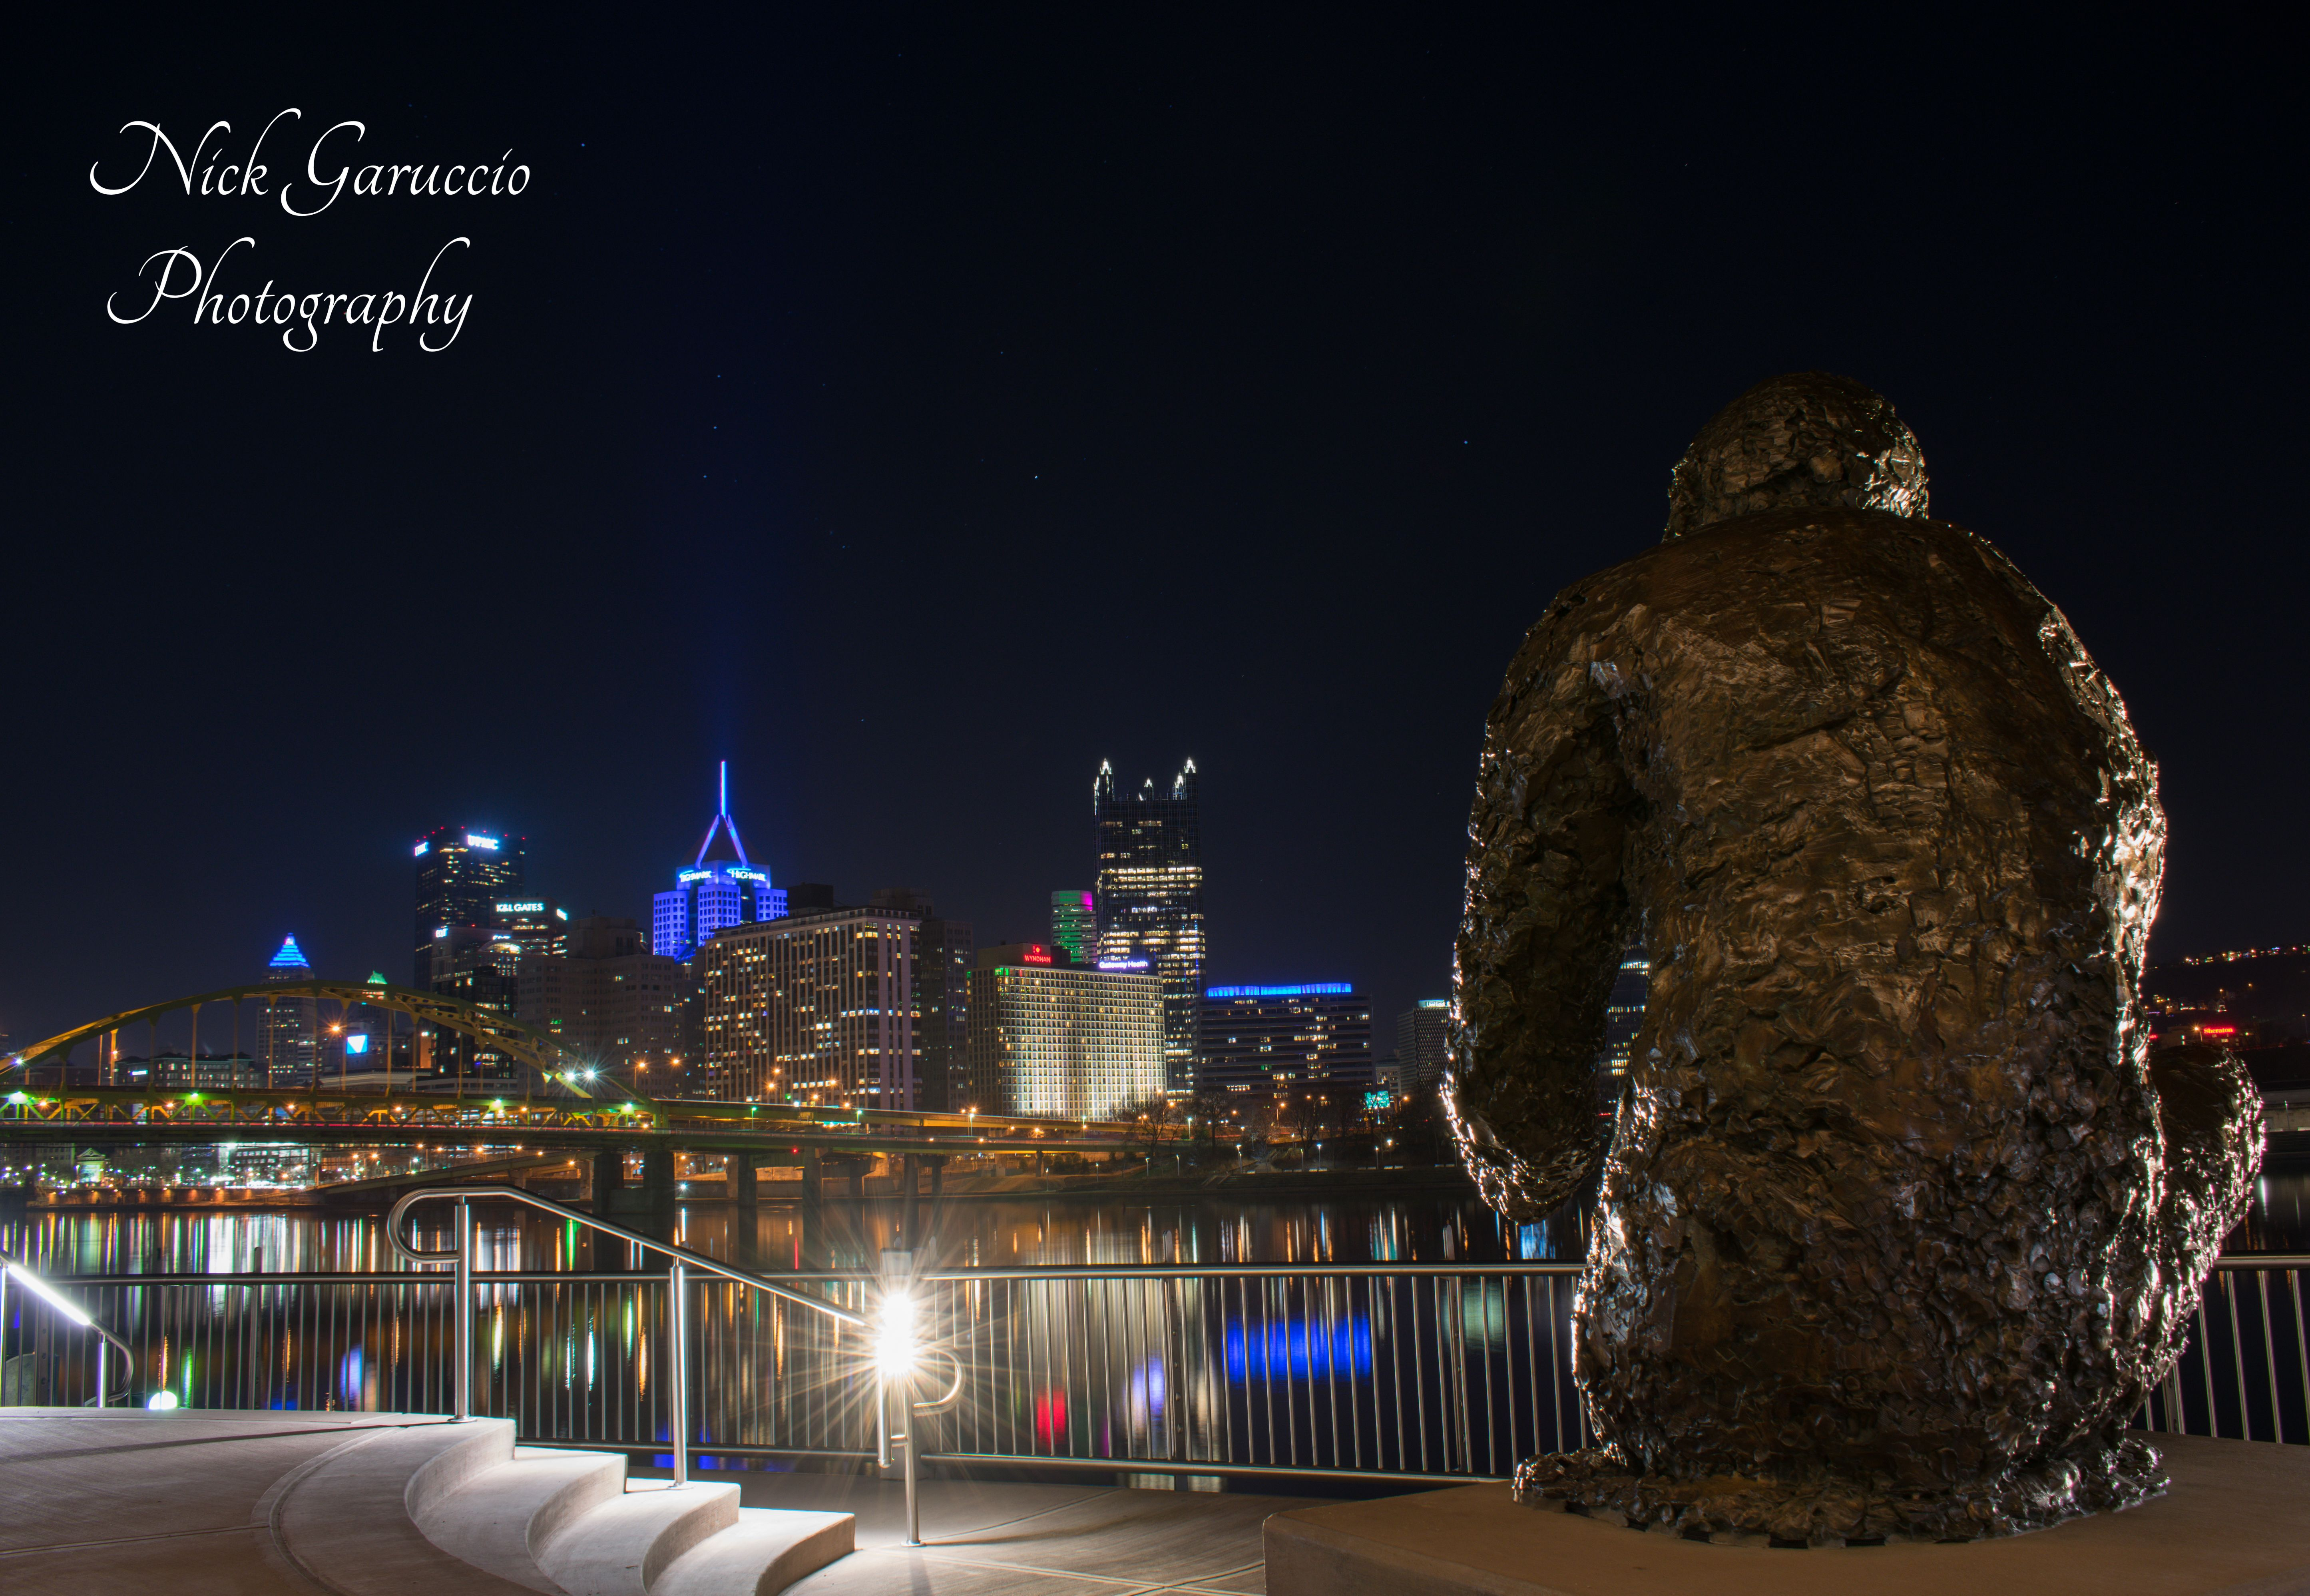 Mister Fred Rogers Memorial Statue On Looking The Golden Triangle Pittsburgh Cityscape Pittsburgh Allegh In 2020 Pittsburgh Cityscape Memorial Statues Pittsburgh City